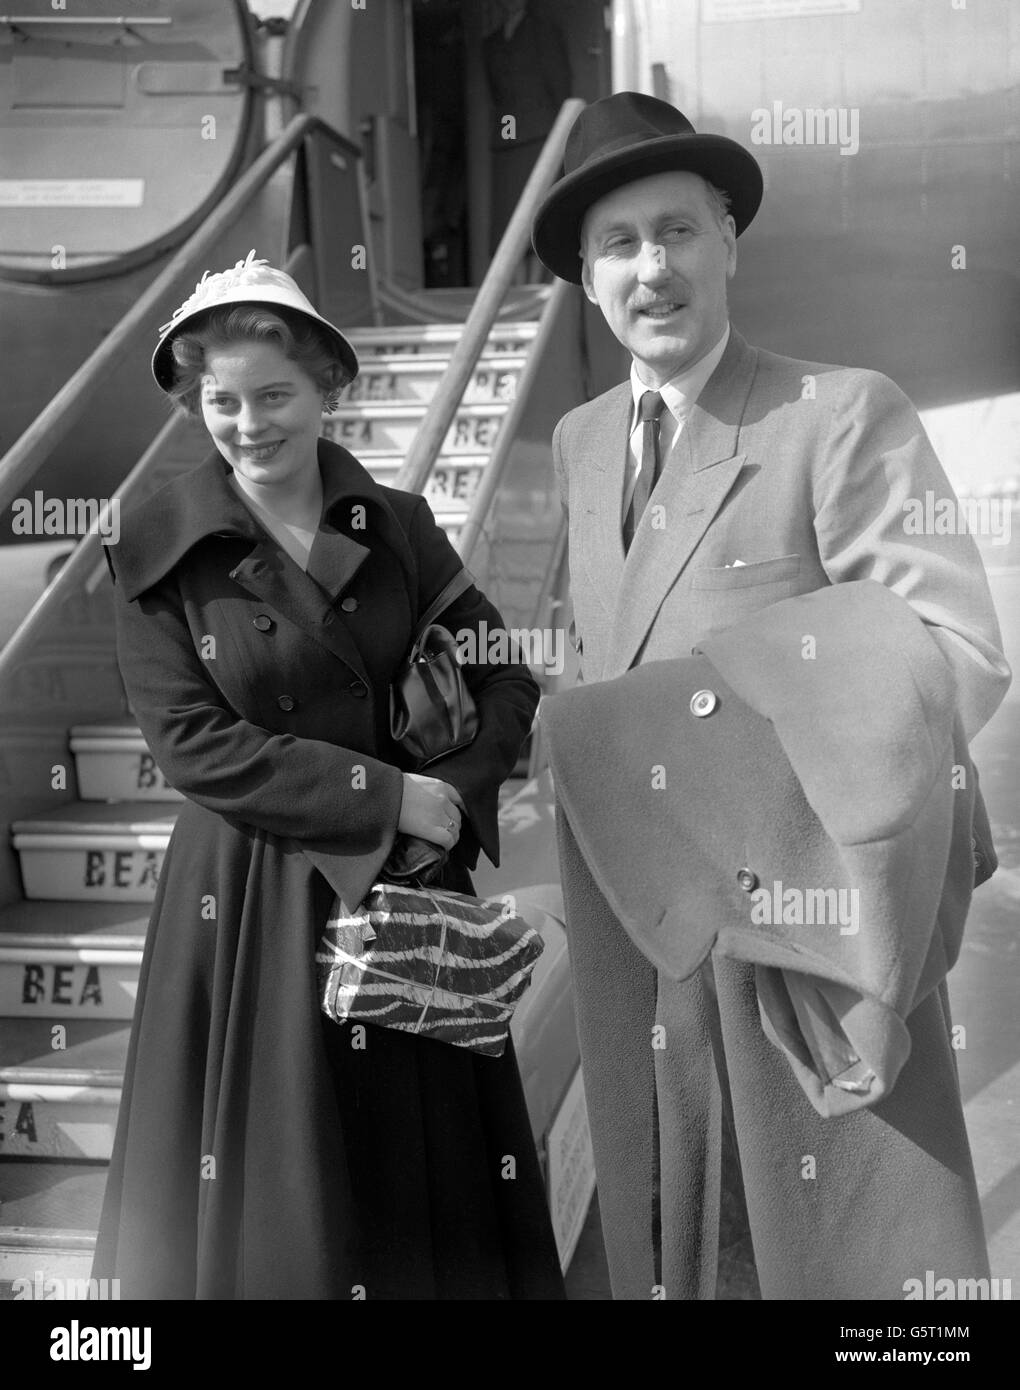 Royalty - Princess Margarita of Baden and her father Prince Bertfold, Margrave of Baden - London Airport Stock Photo